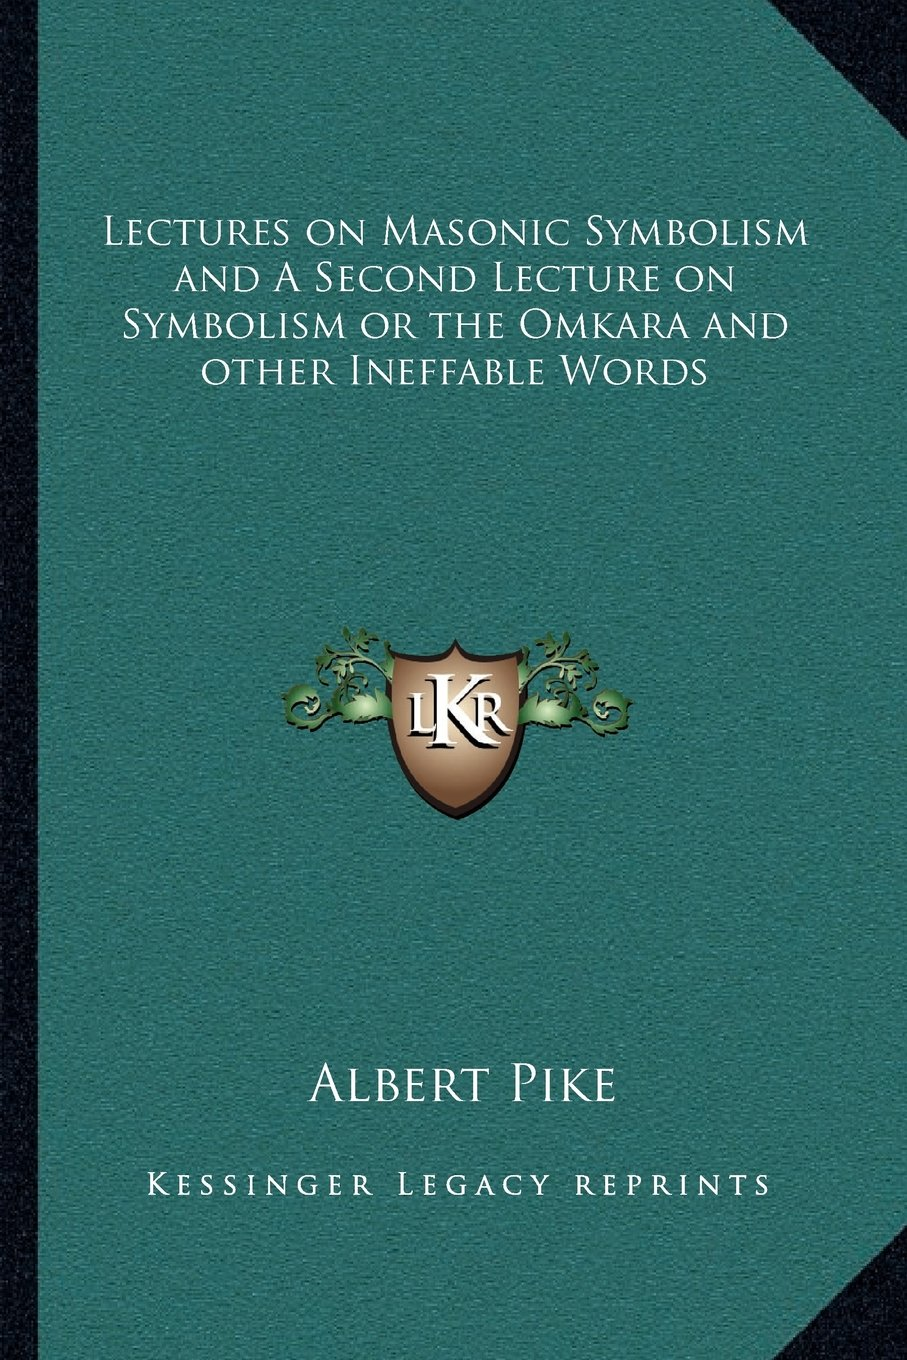 Read Online Lectures on Masonic Symbolism and A Second Lecture on Symbolism or the Omkara and other Ineffable Words pdf